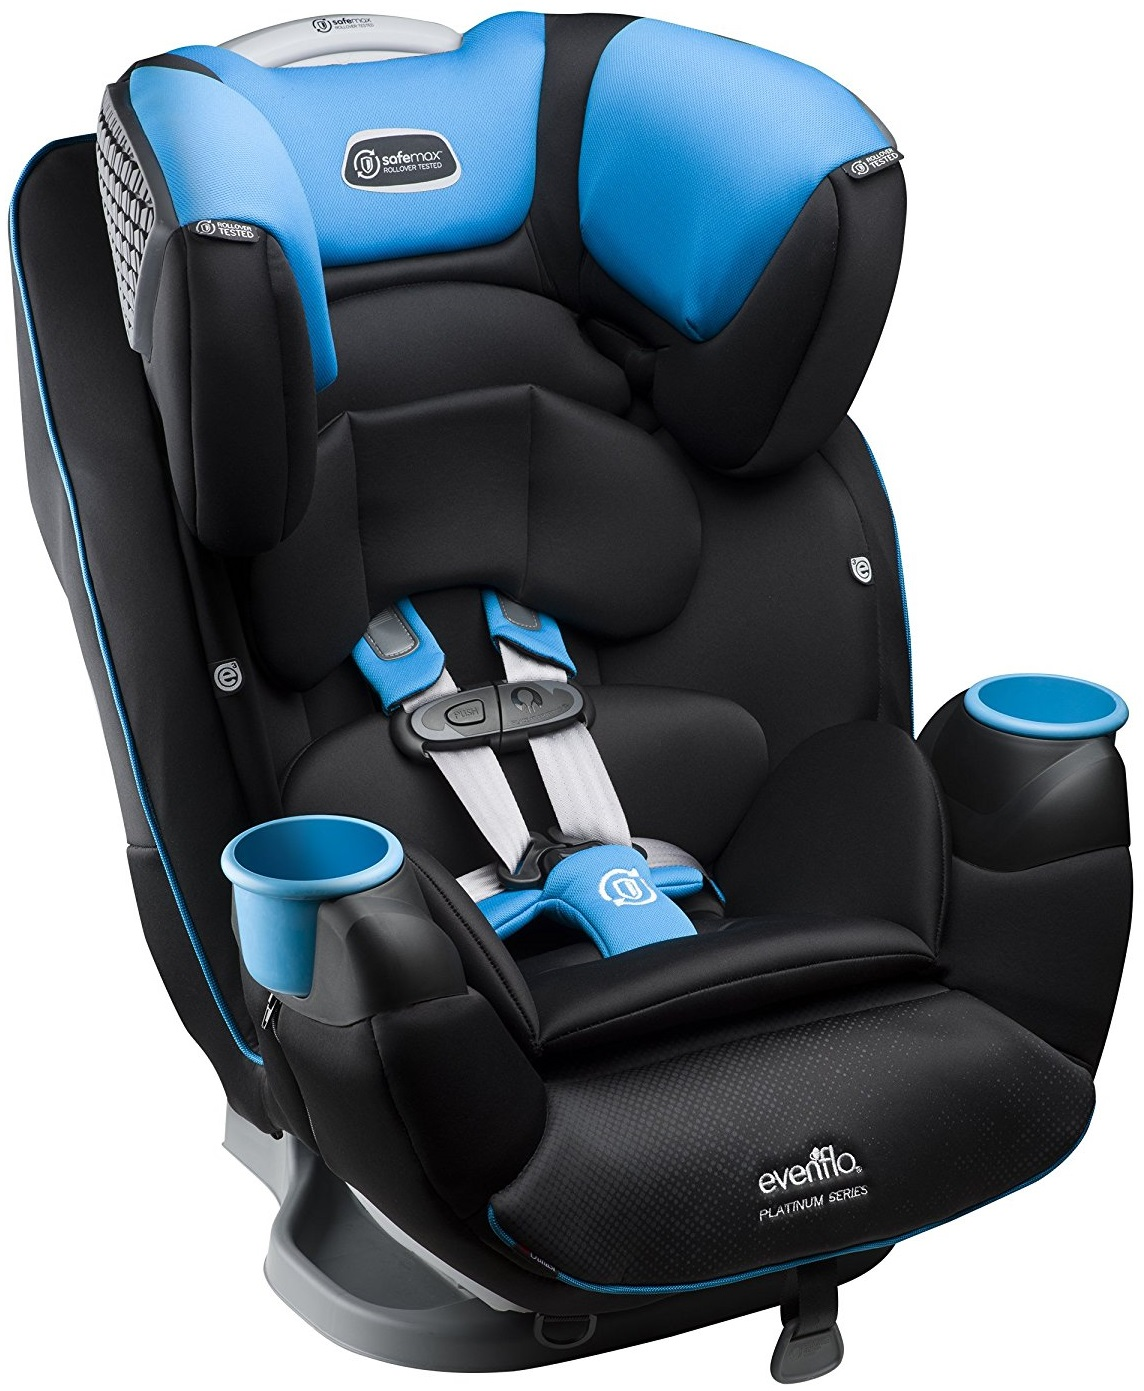 Evenflo Surelatch Car Seat Cover